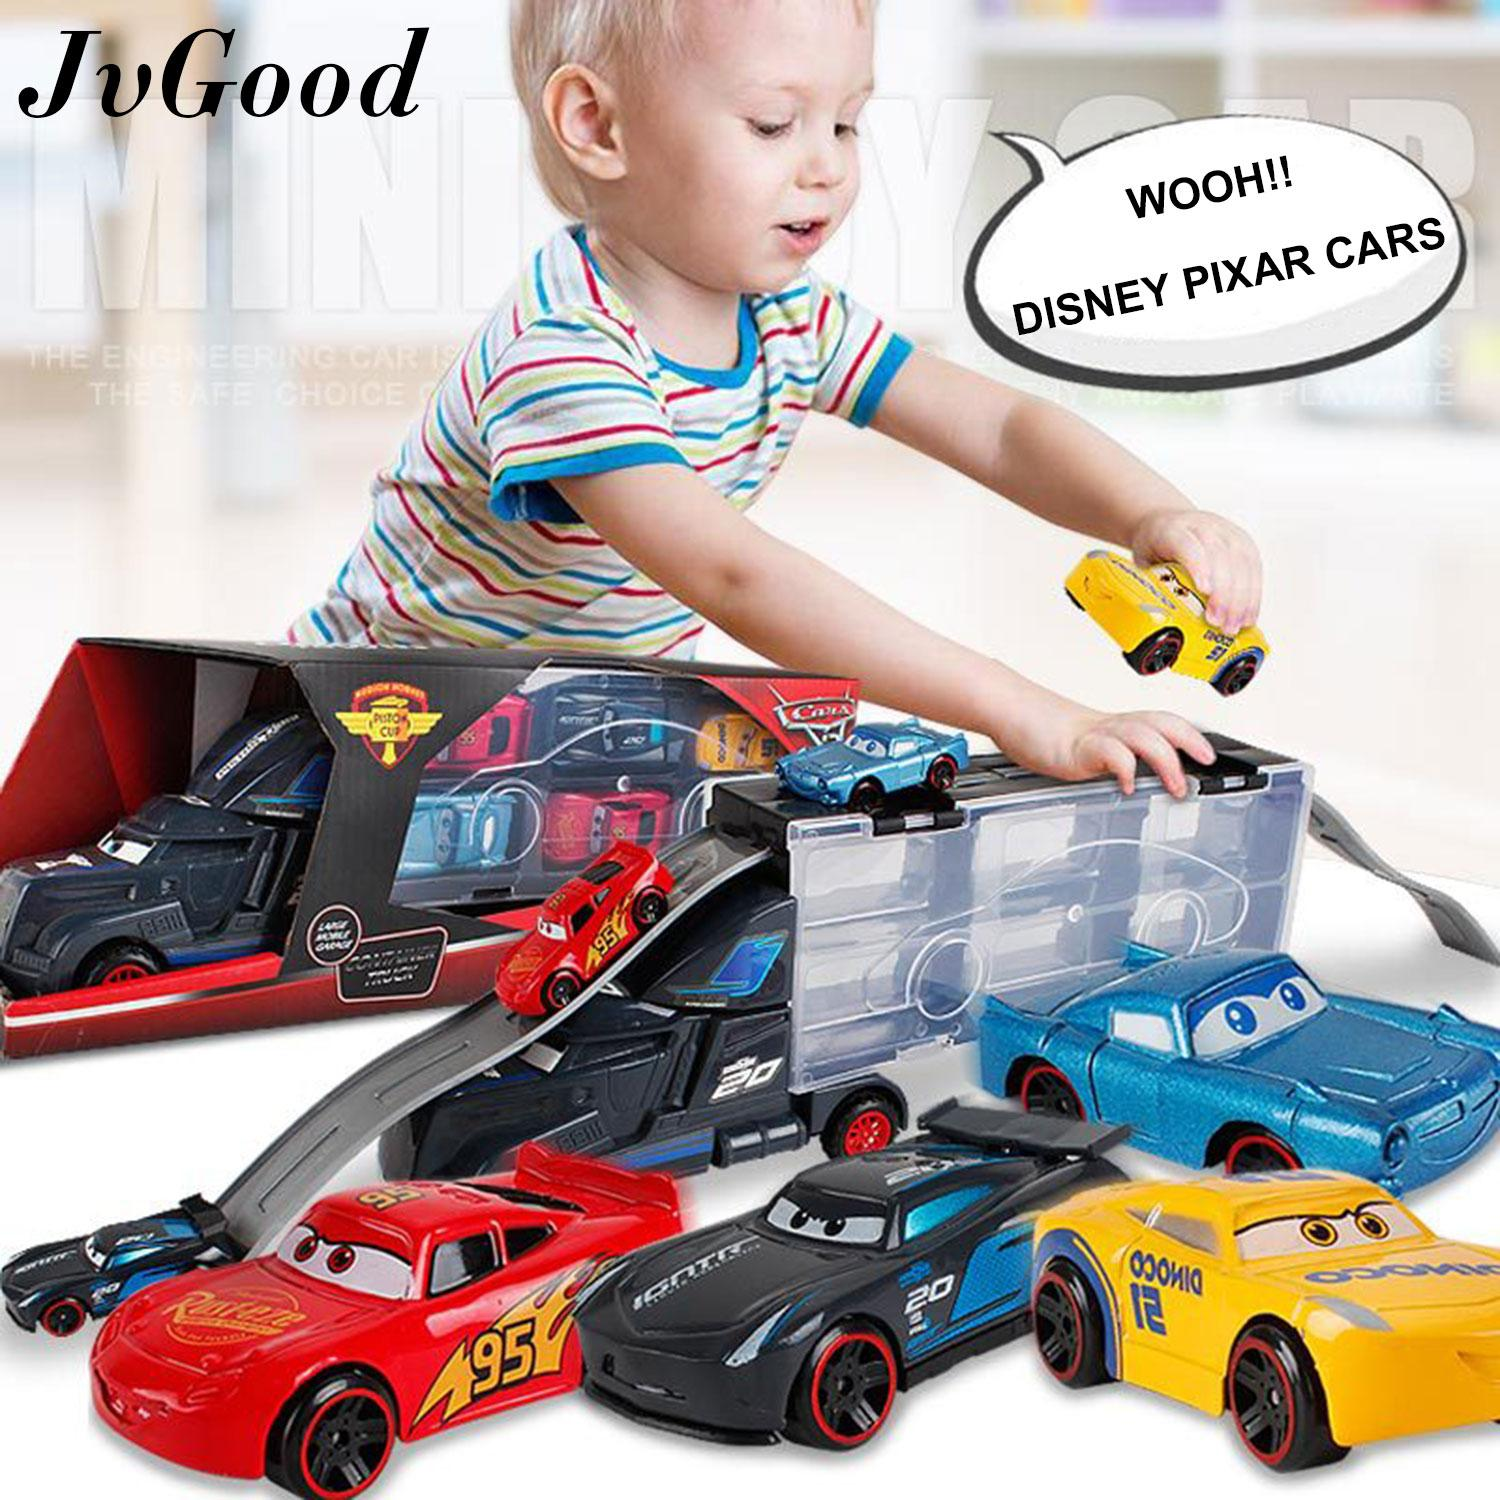 Jvgood 6 In 1 Vehicle Playsets Mcqueen Pixar Cars 3 Jackson Storm Daniel Swervez Mack Uncle Truck Hauler And 6pcs Mini Model Car Figure Toys Playsets Best Gifts For Kids By Jvgood.